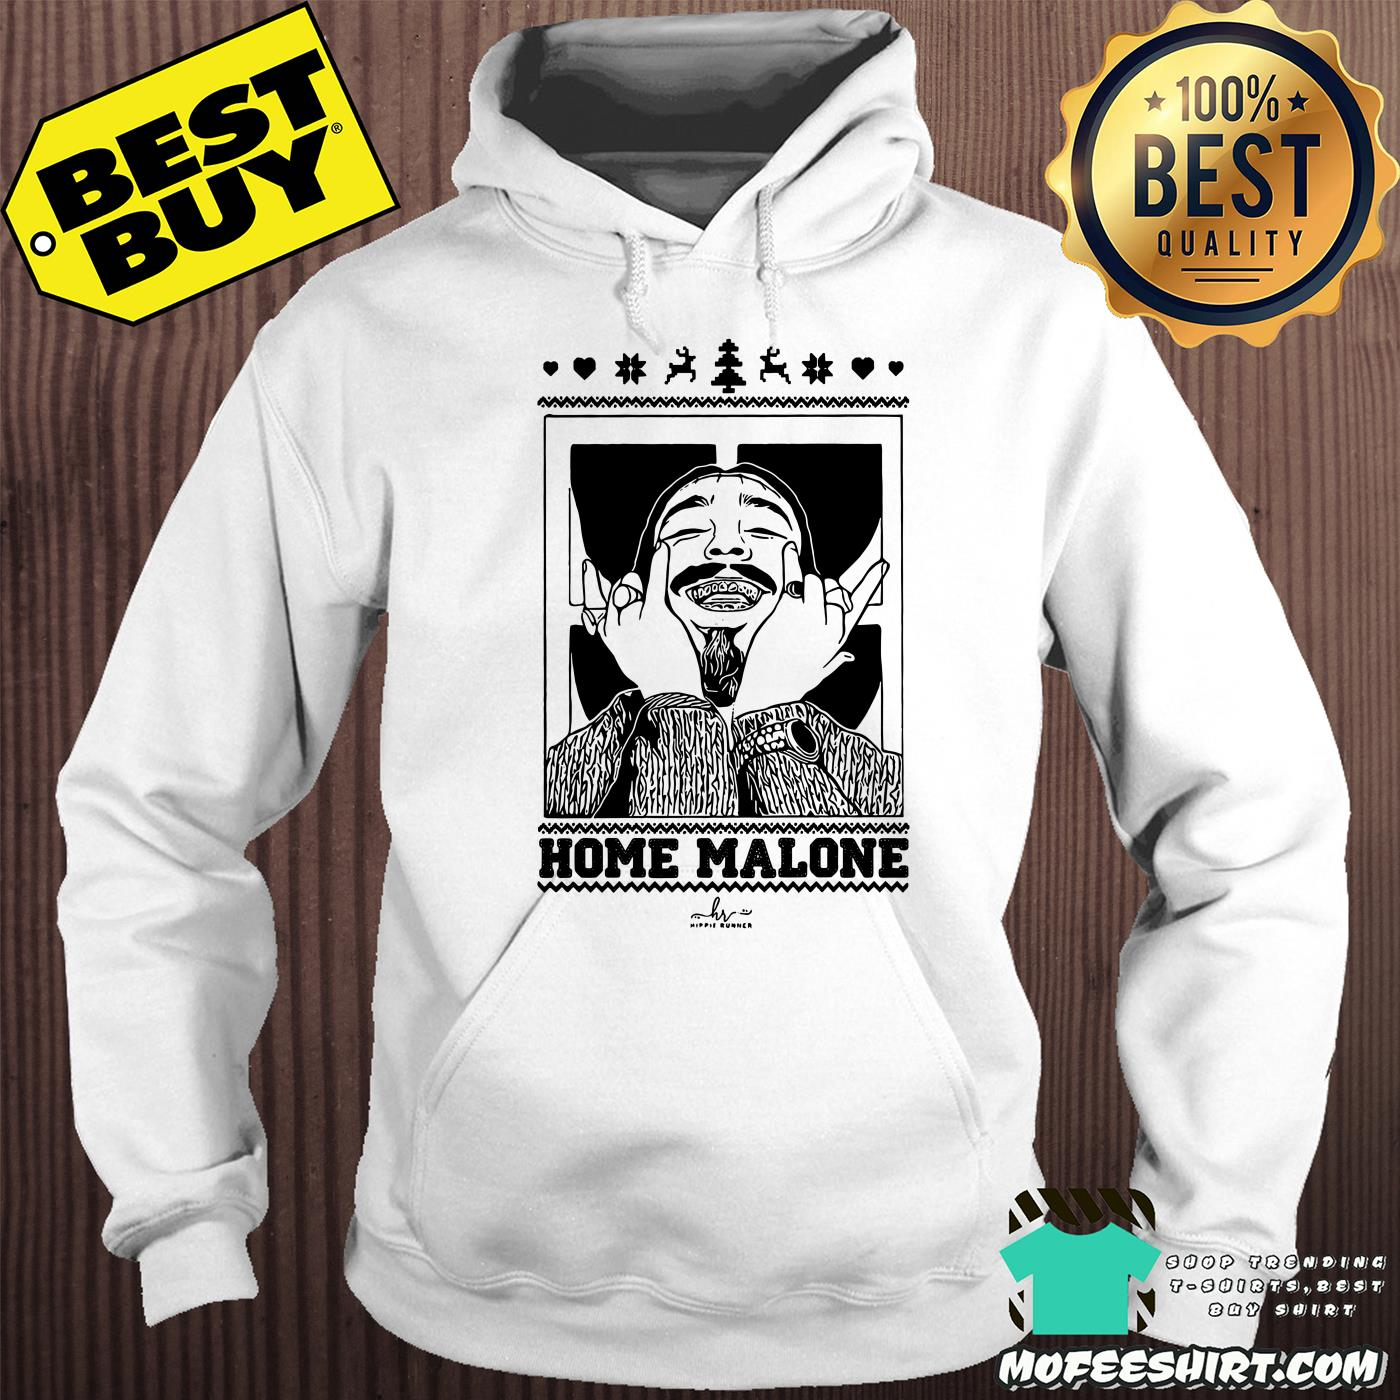 Post Malone Die For Me: [Sale 20%] Official Christmas Post Malone Home Malone